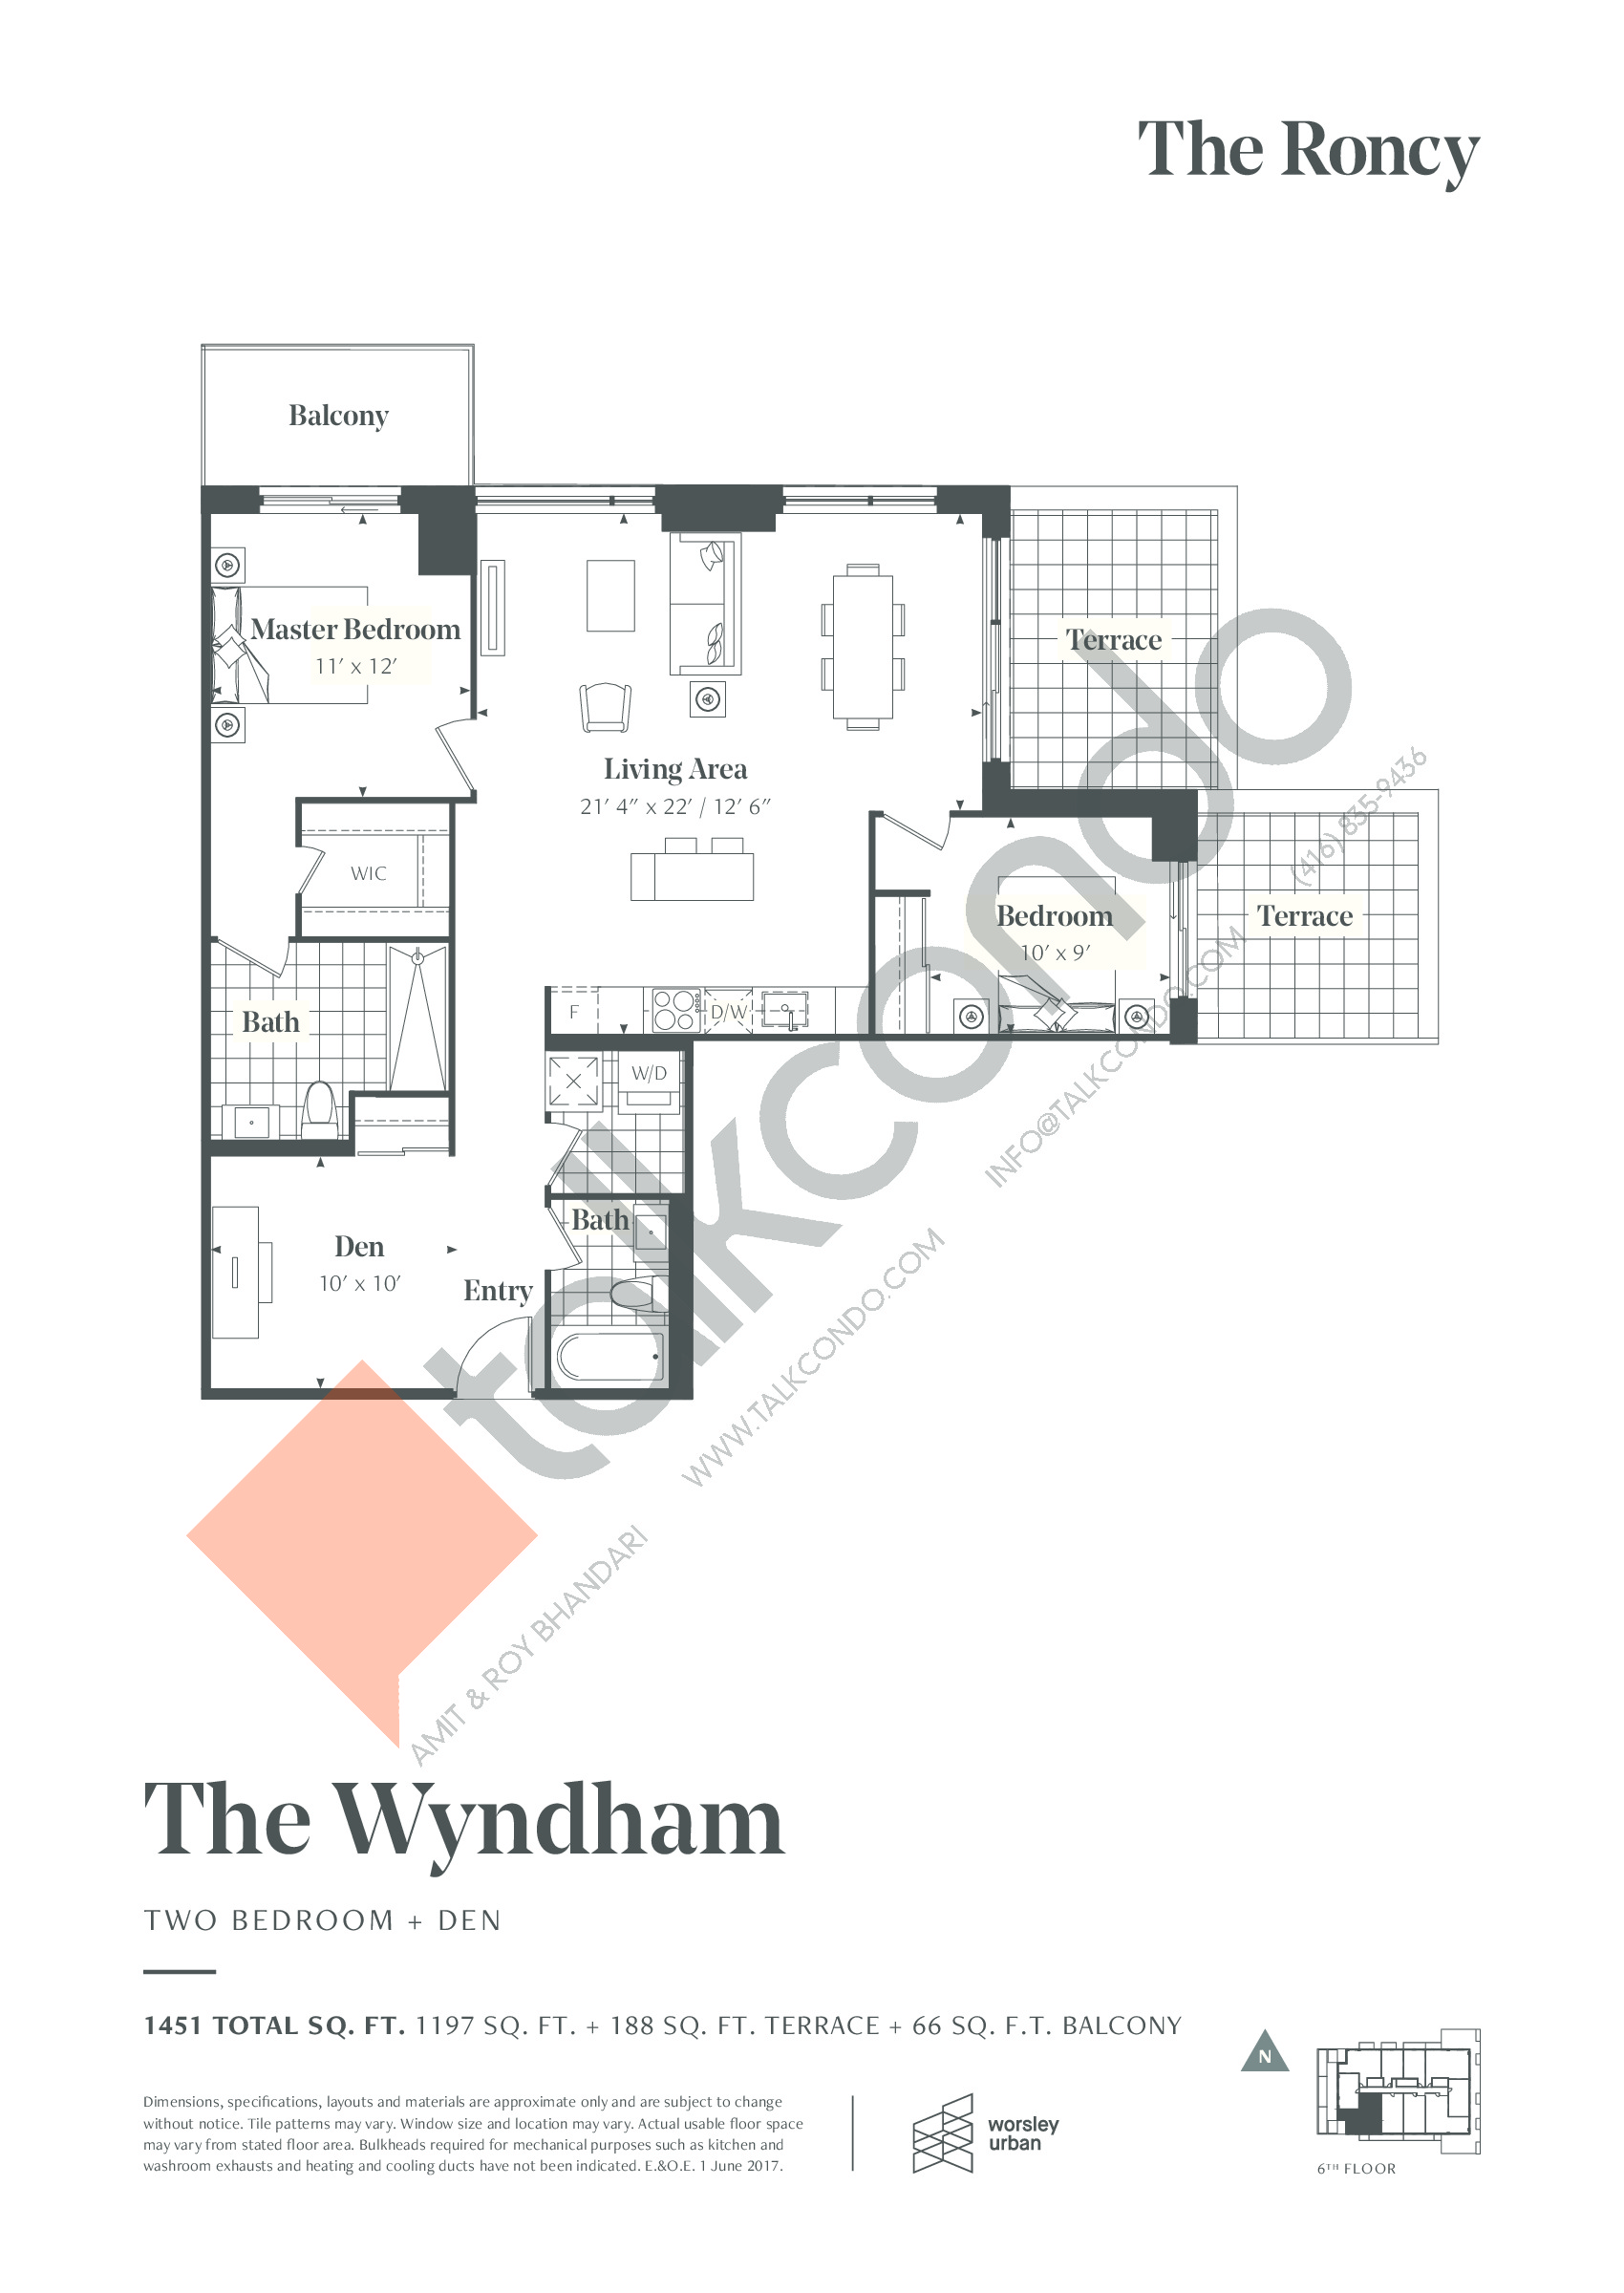 The Wyndham Floor Plan at The Roncy Condos - 1197 sq.ft